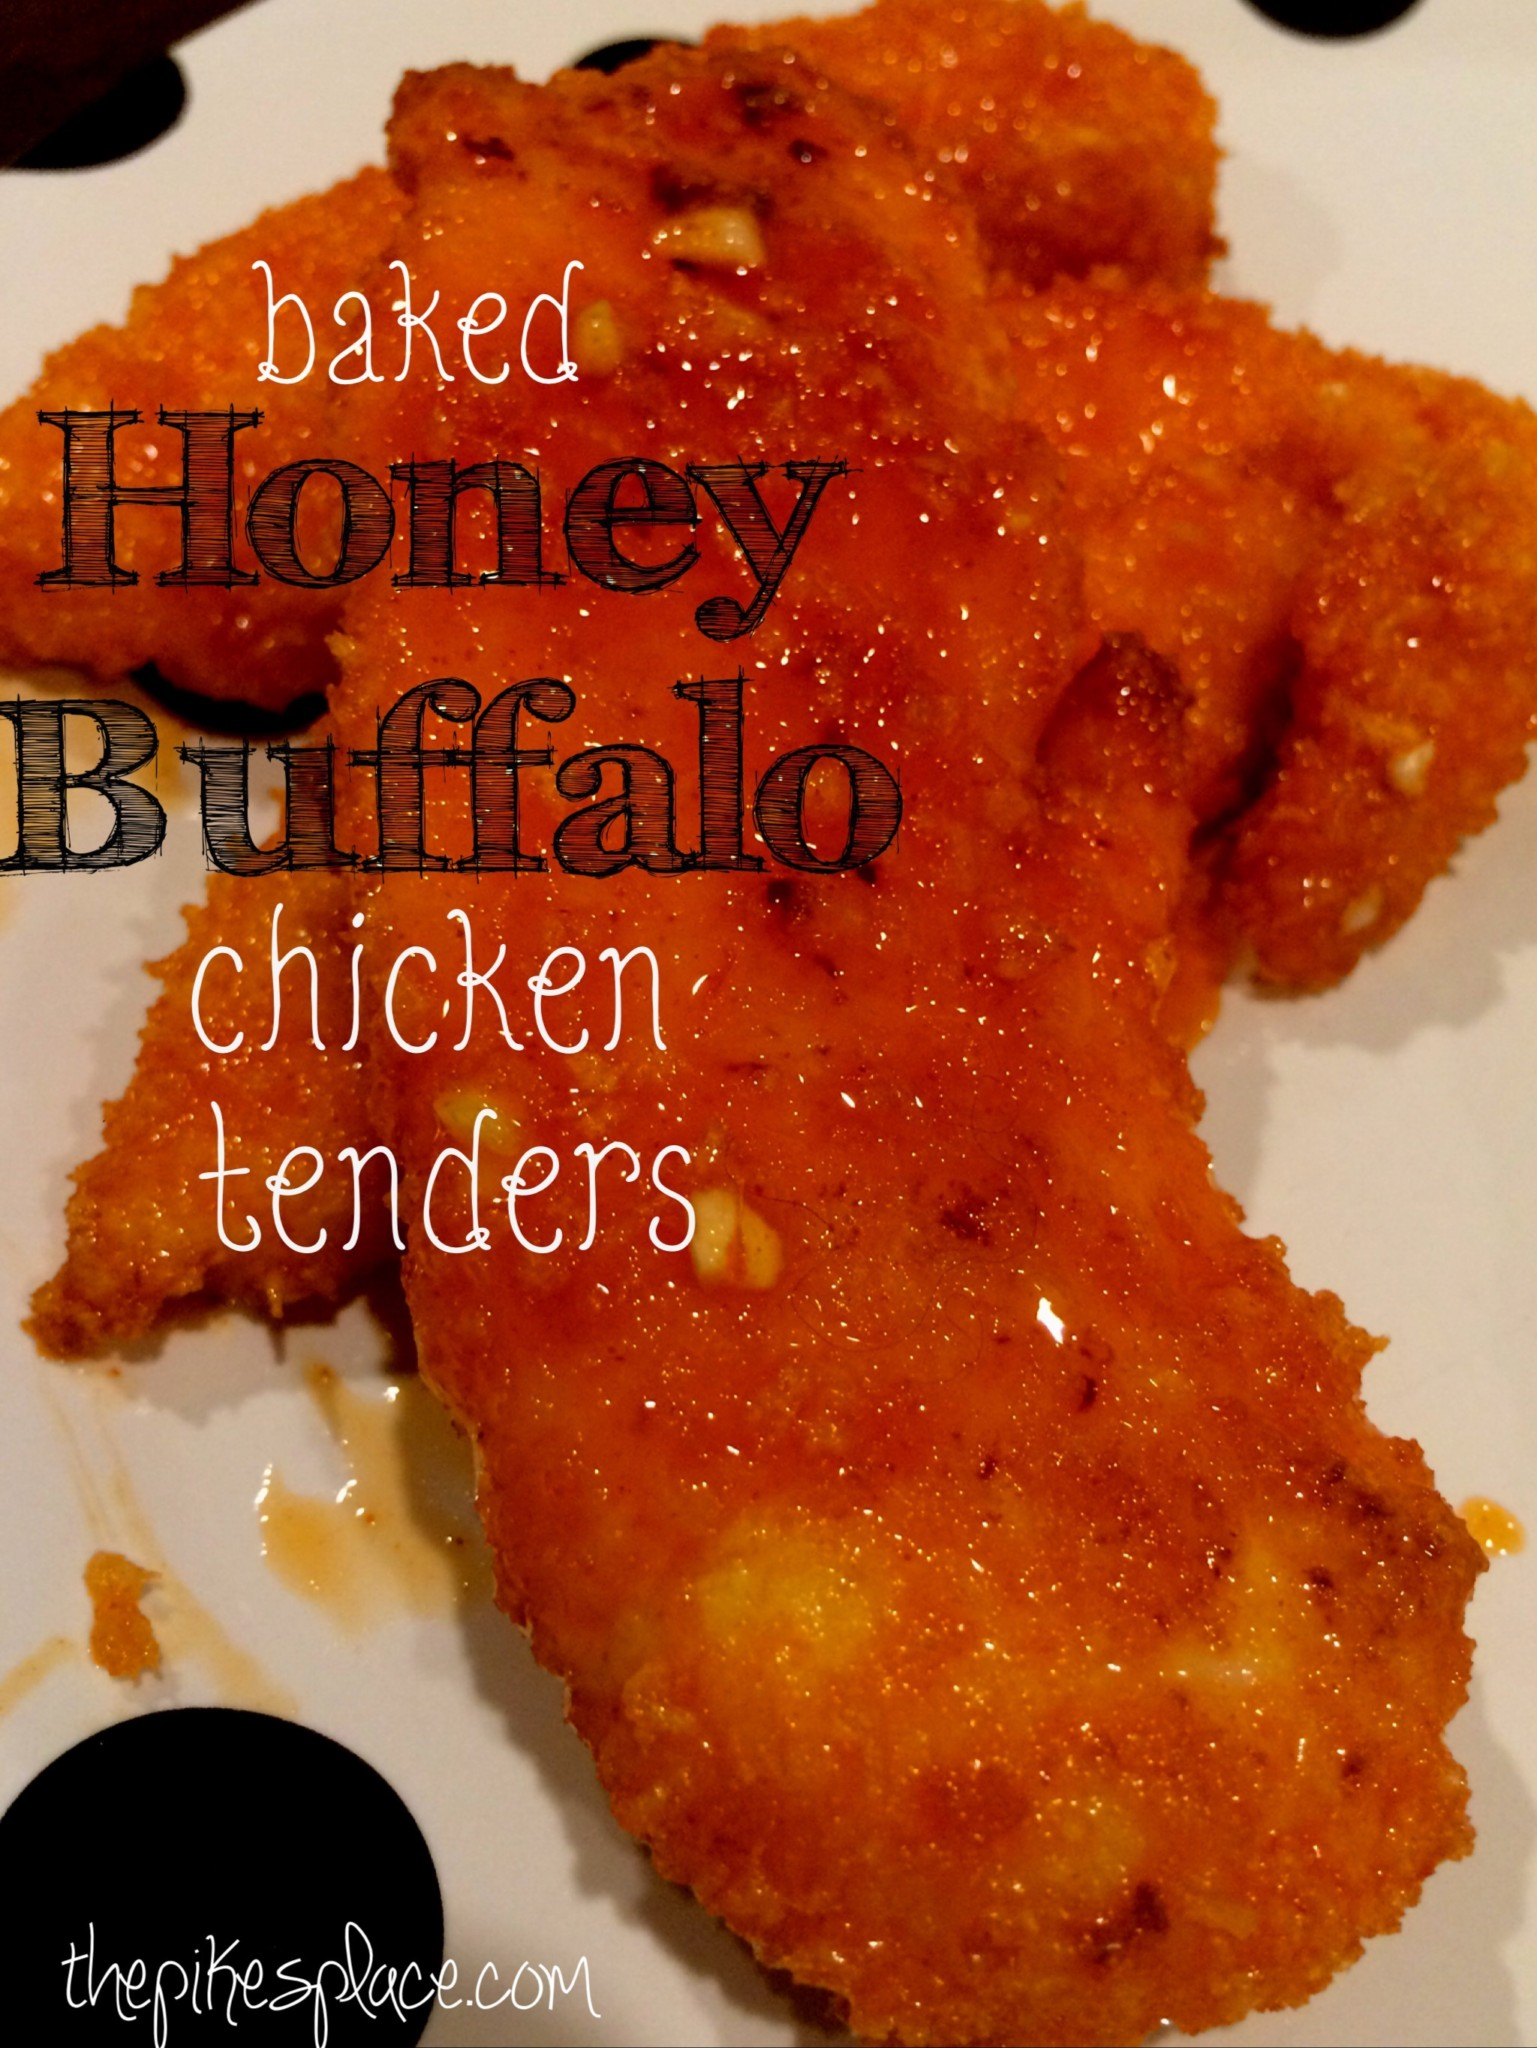 Baked Honey Buffalo Chicken Tenders. The healthier non-friend chicken tender recipe will have you and your family coming back for more!